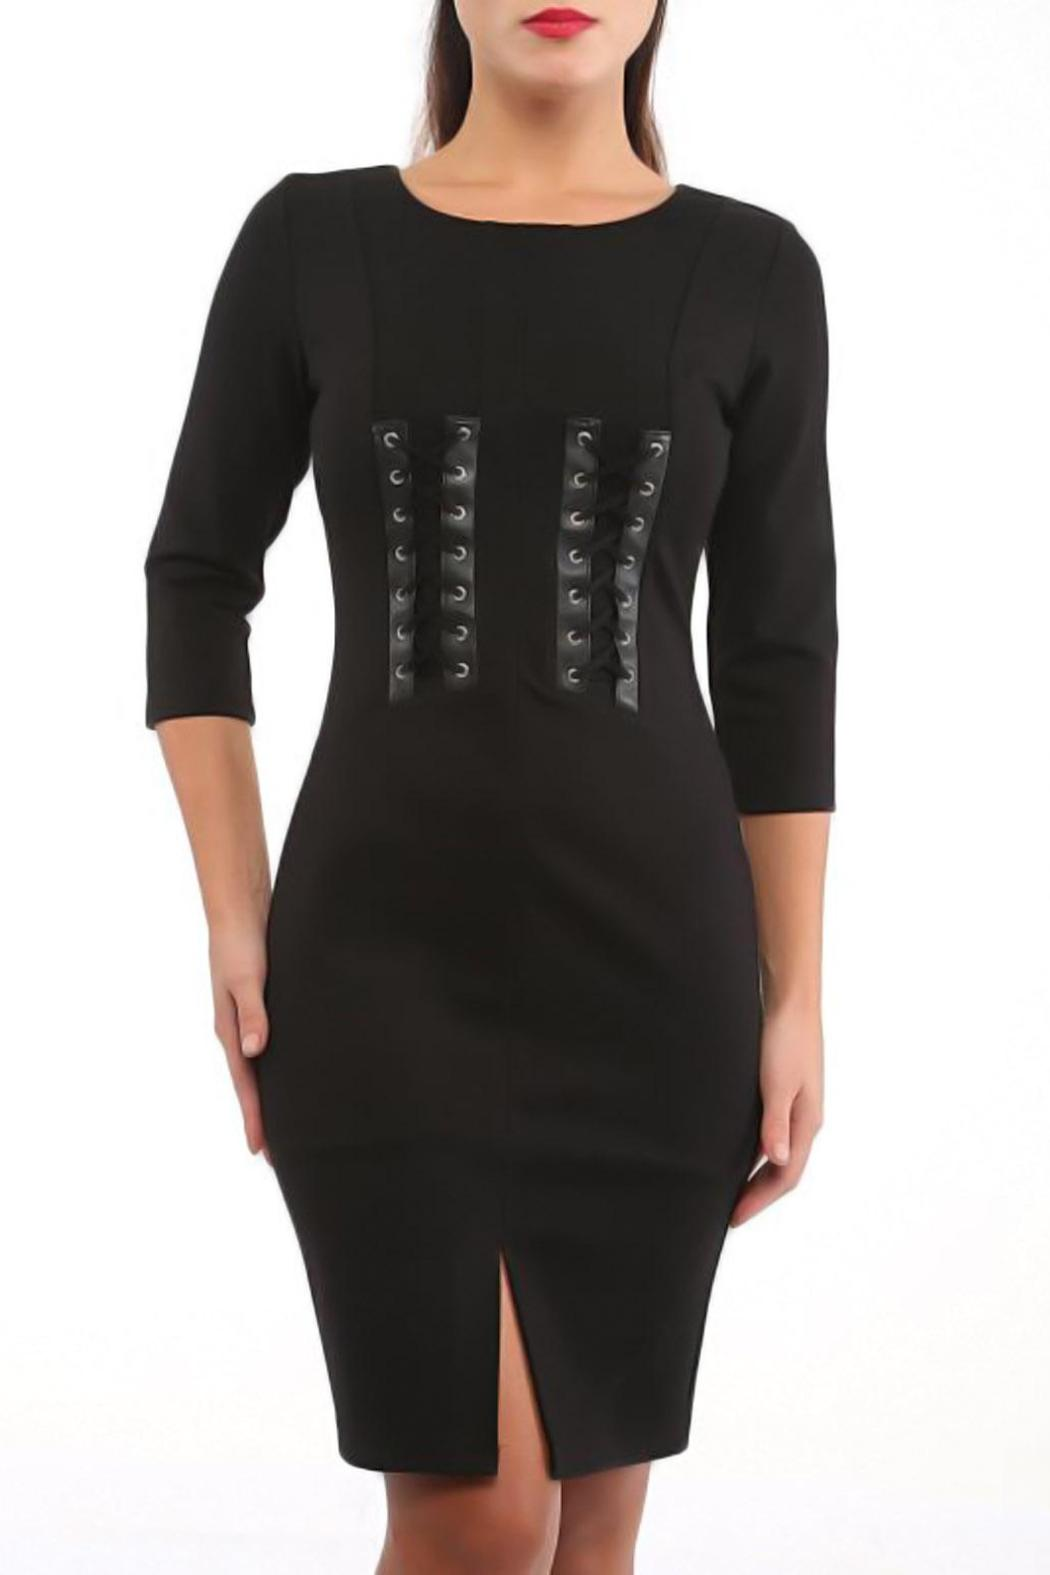 CALORE Fitted Black Dress - Main Image